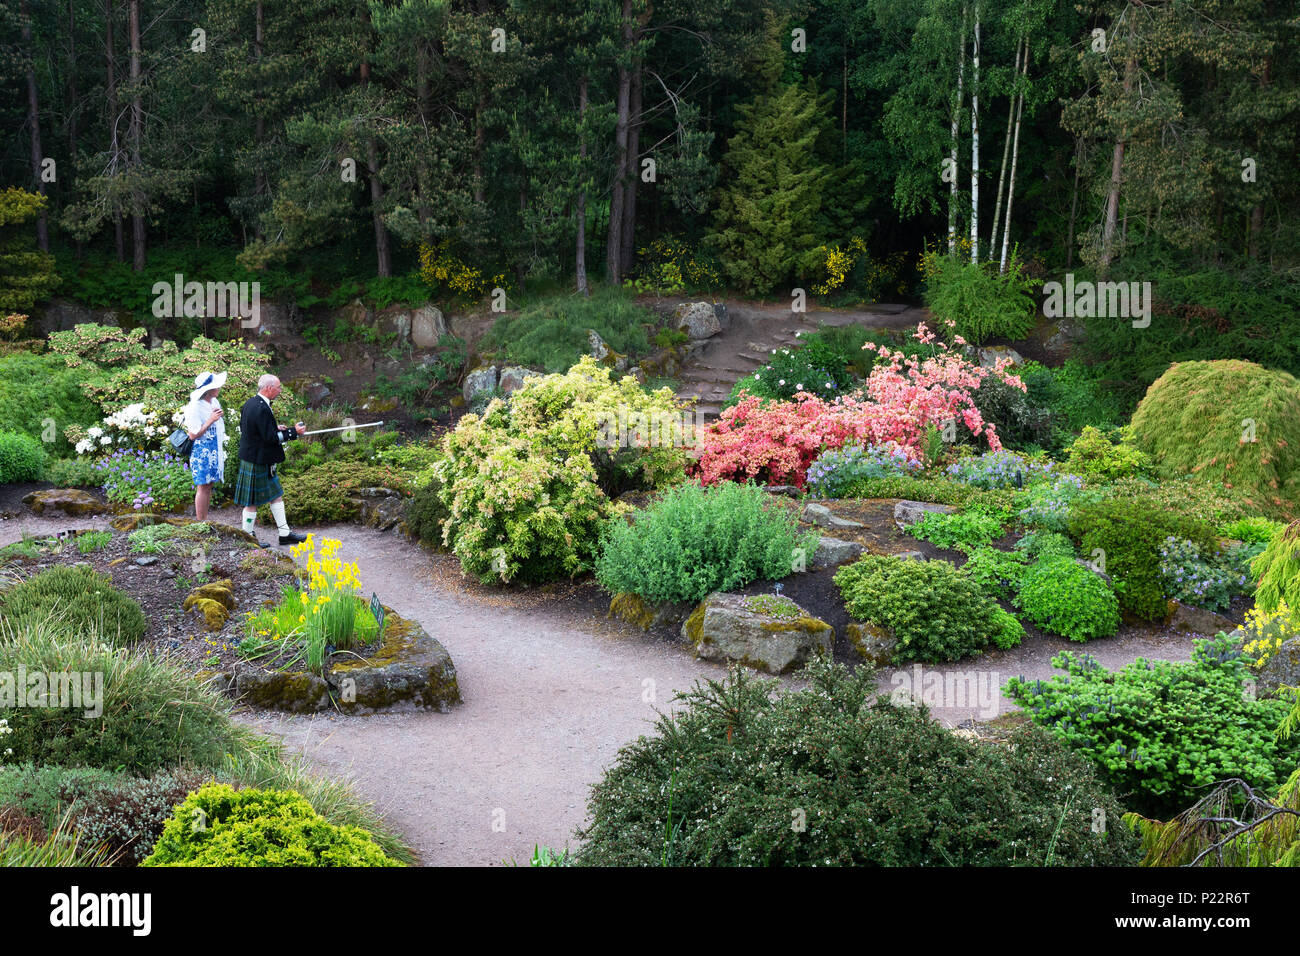 Visitors walking in the Royal Botanic Garden, Edinburgh, Scotland UK - Stock Image